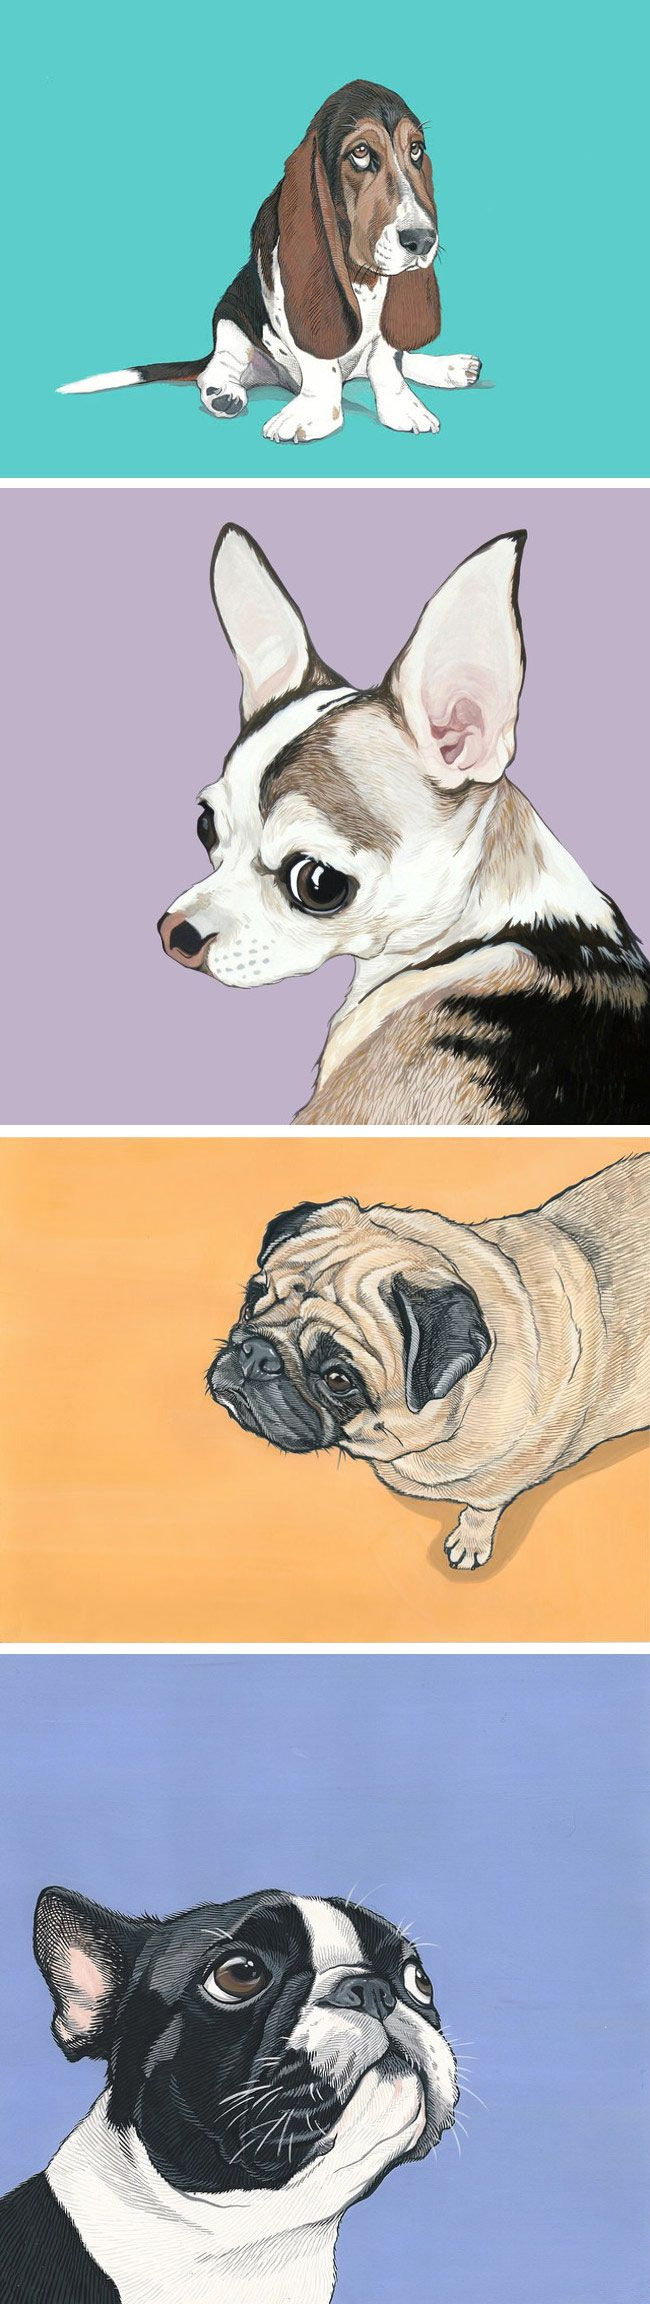 Custom pop-art style pet portraits by Manda Wolfe | The Pet Anthology #DogIllustration